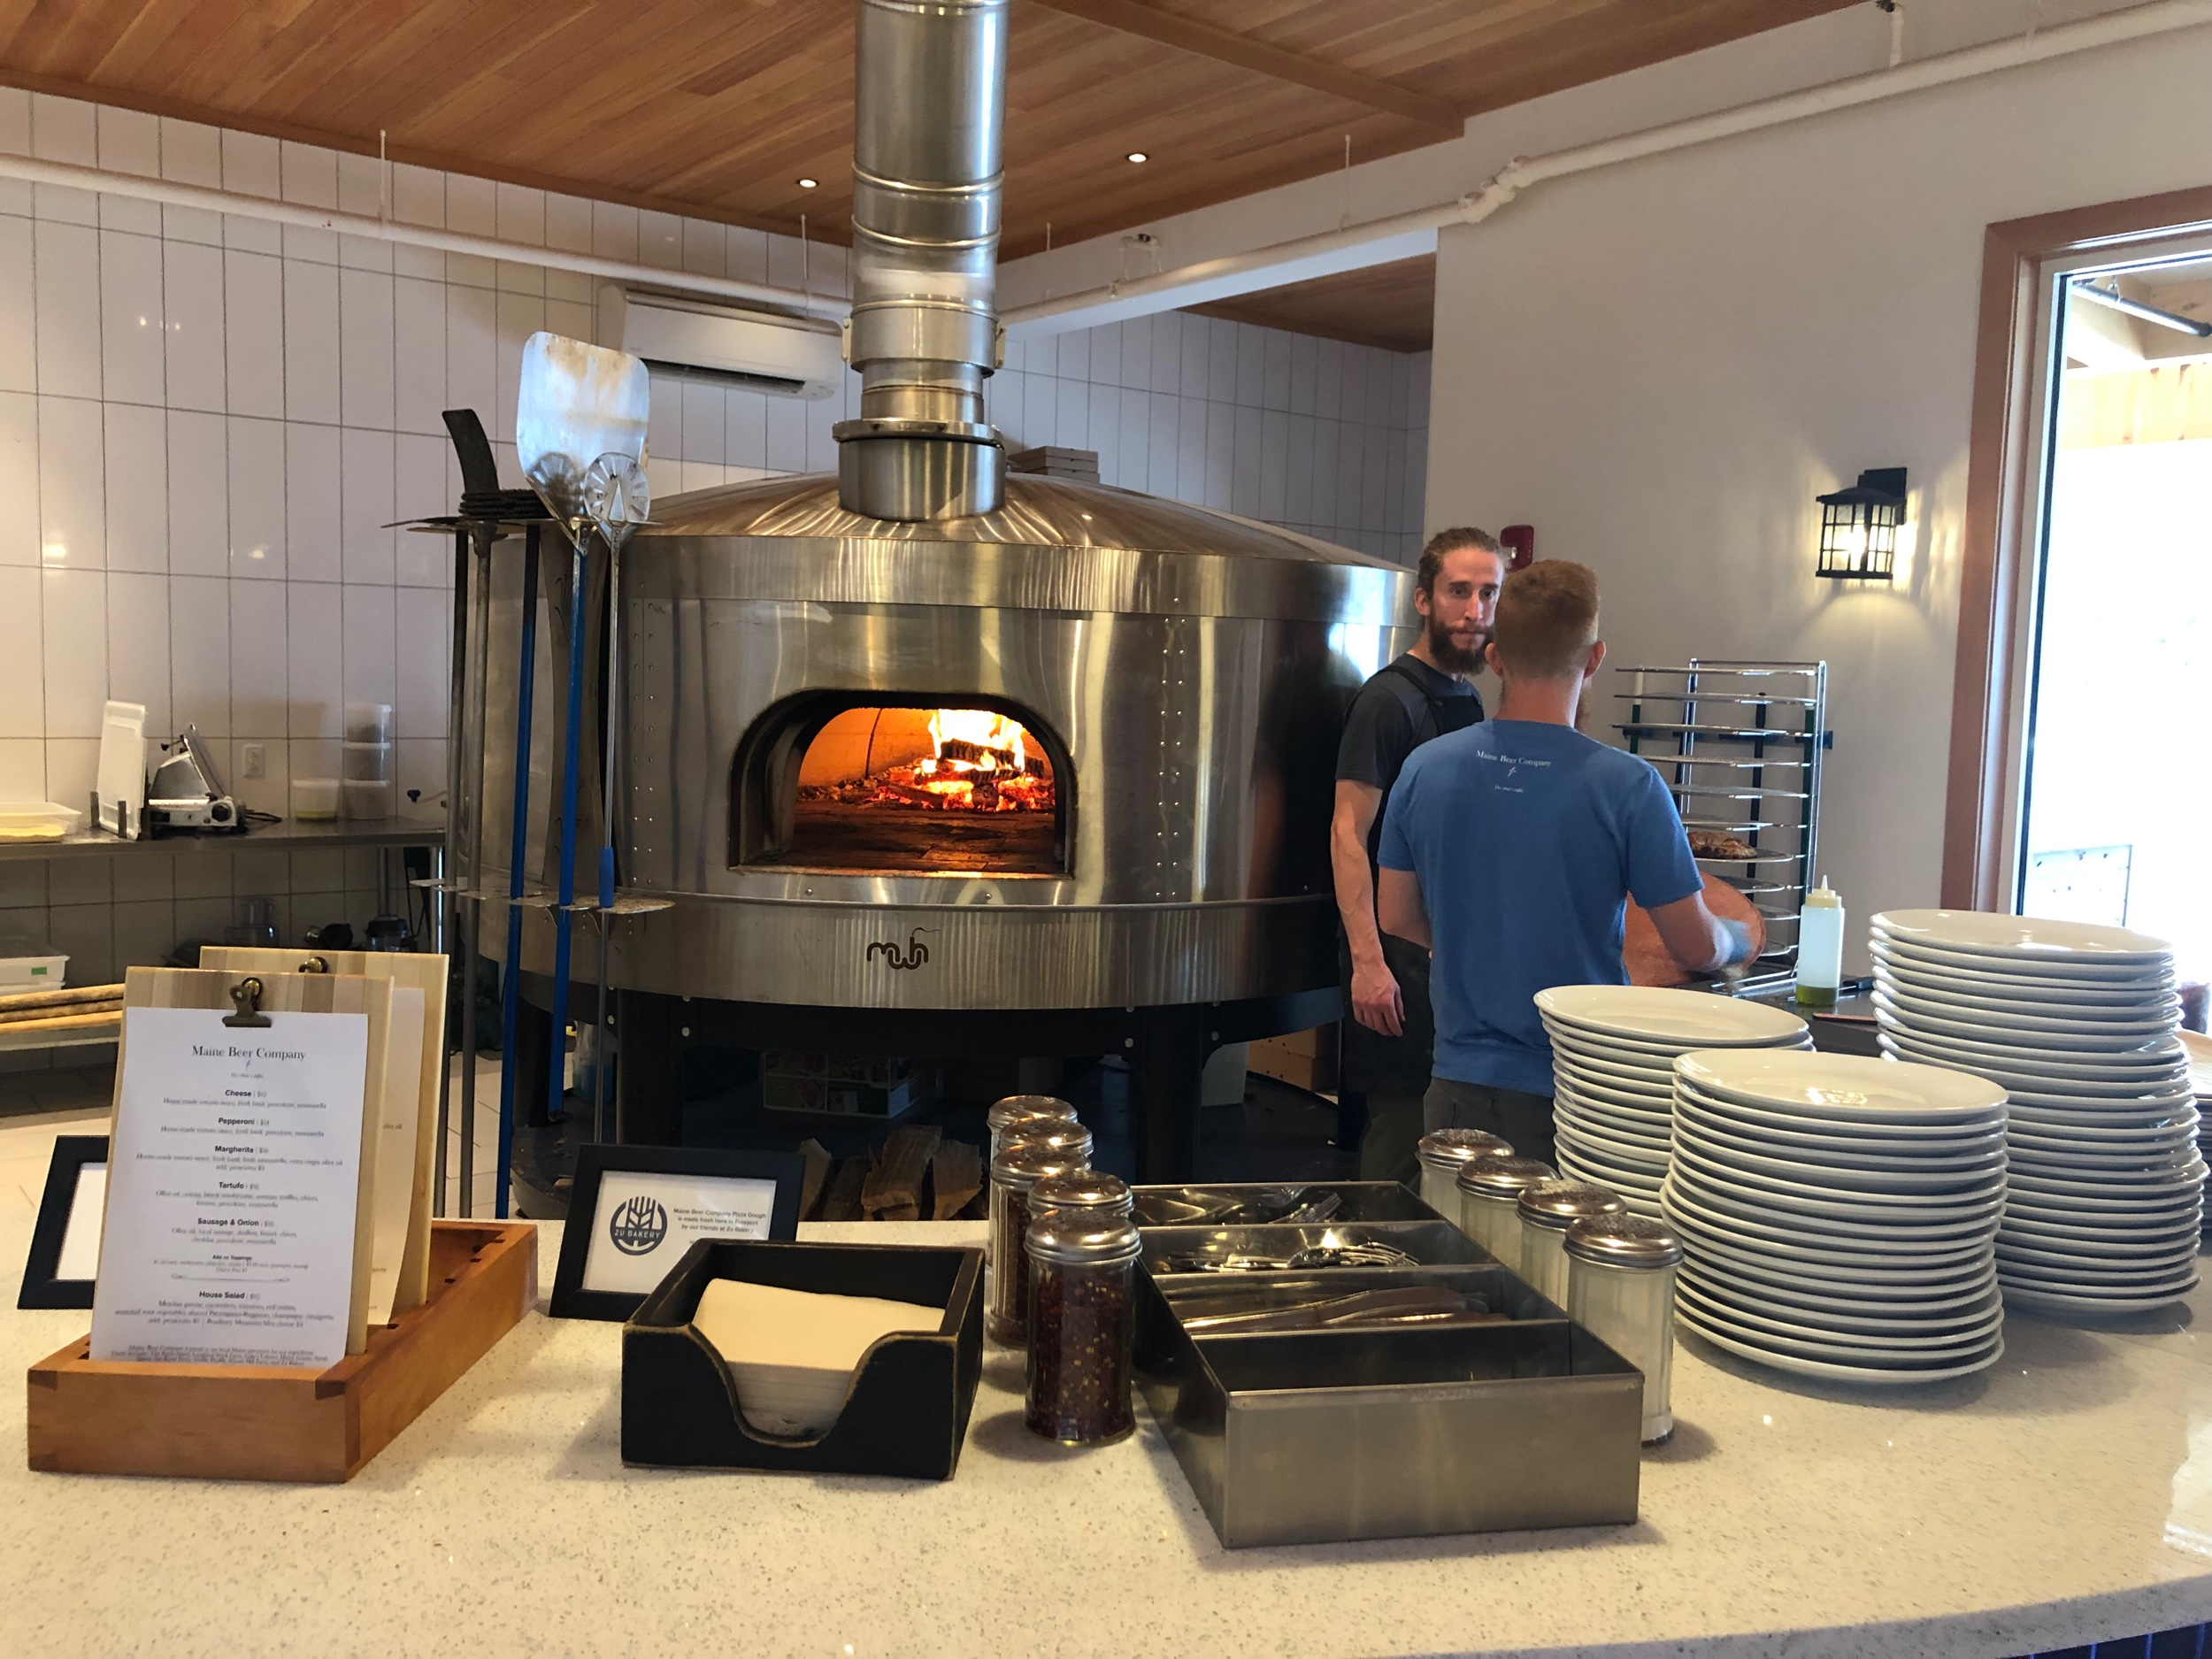 Just a tasting room no more. Now you can get pizza and other comestibles.